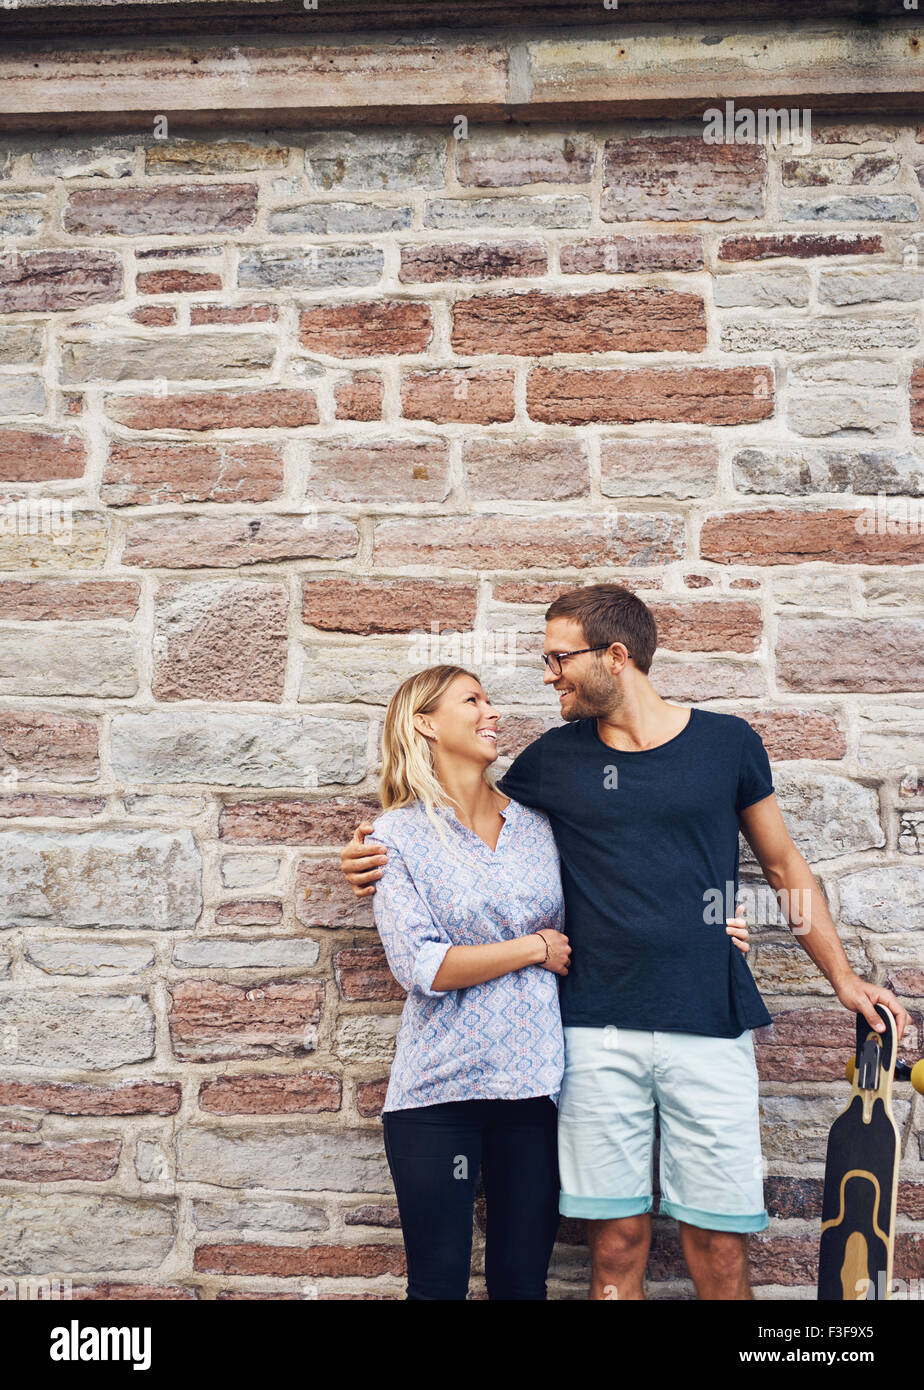 Three Quarter Shot of a Happy Sweet Couple with Skateboard, Smiling at Each Other Against Concrete Wall Background. - Stock Image